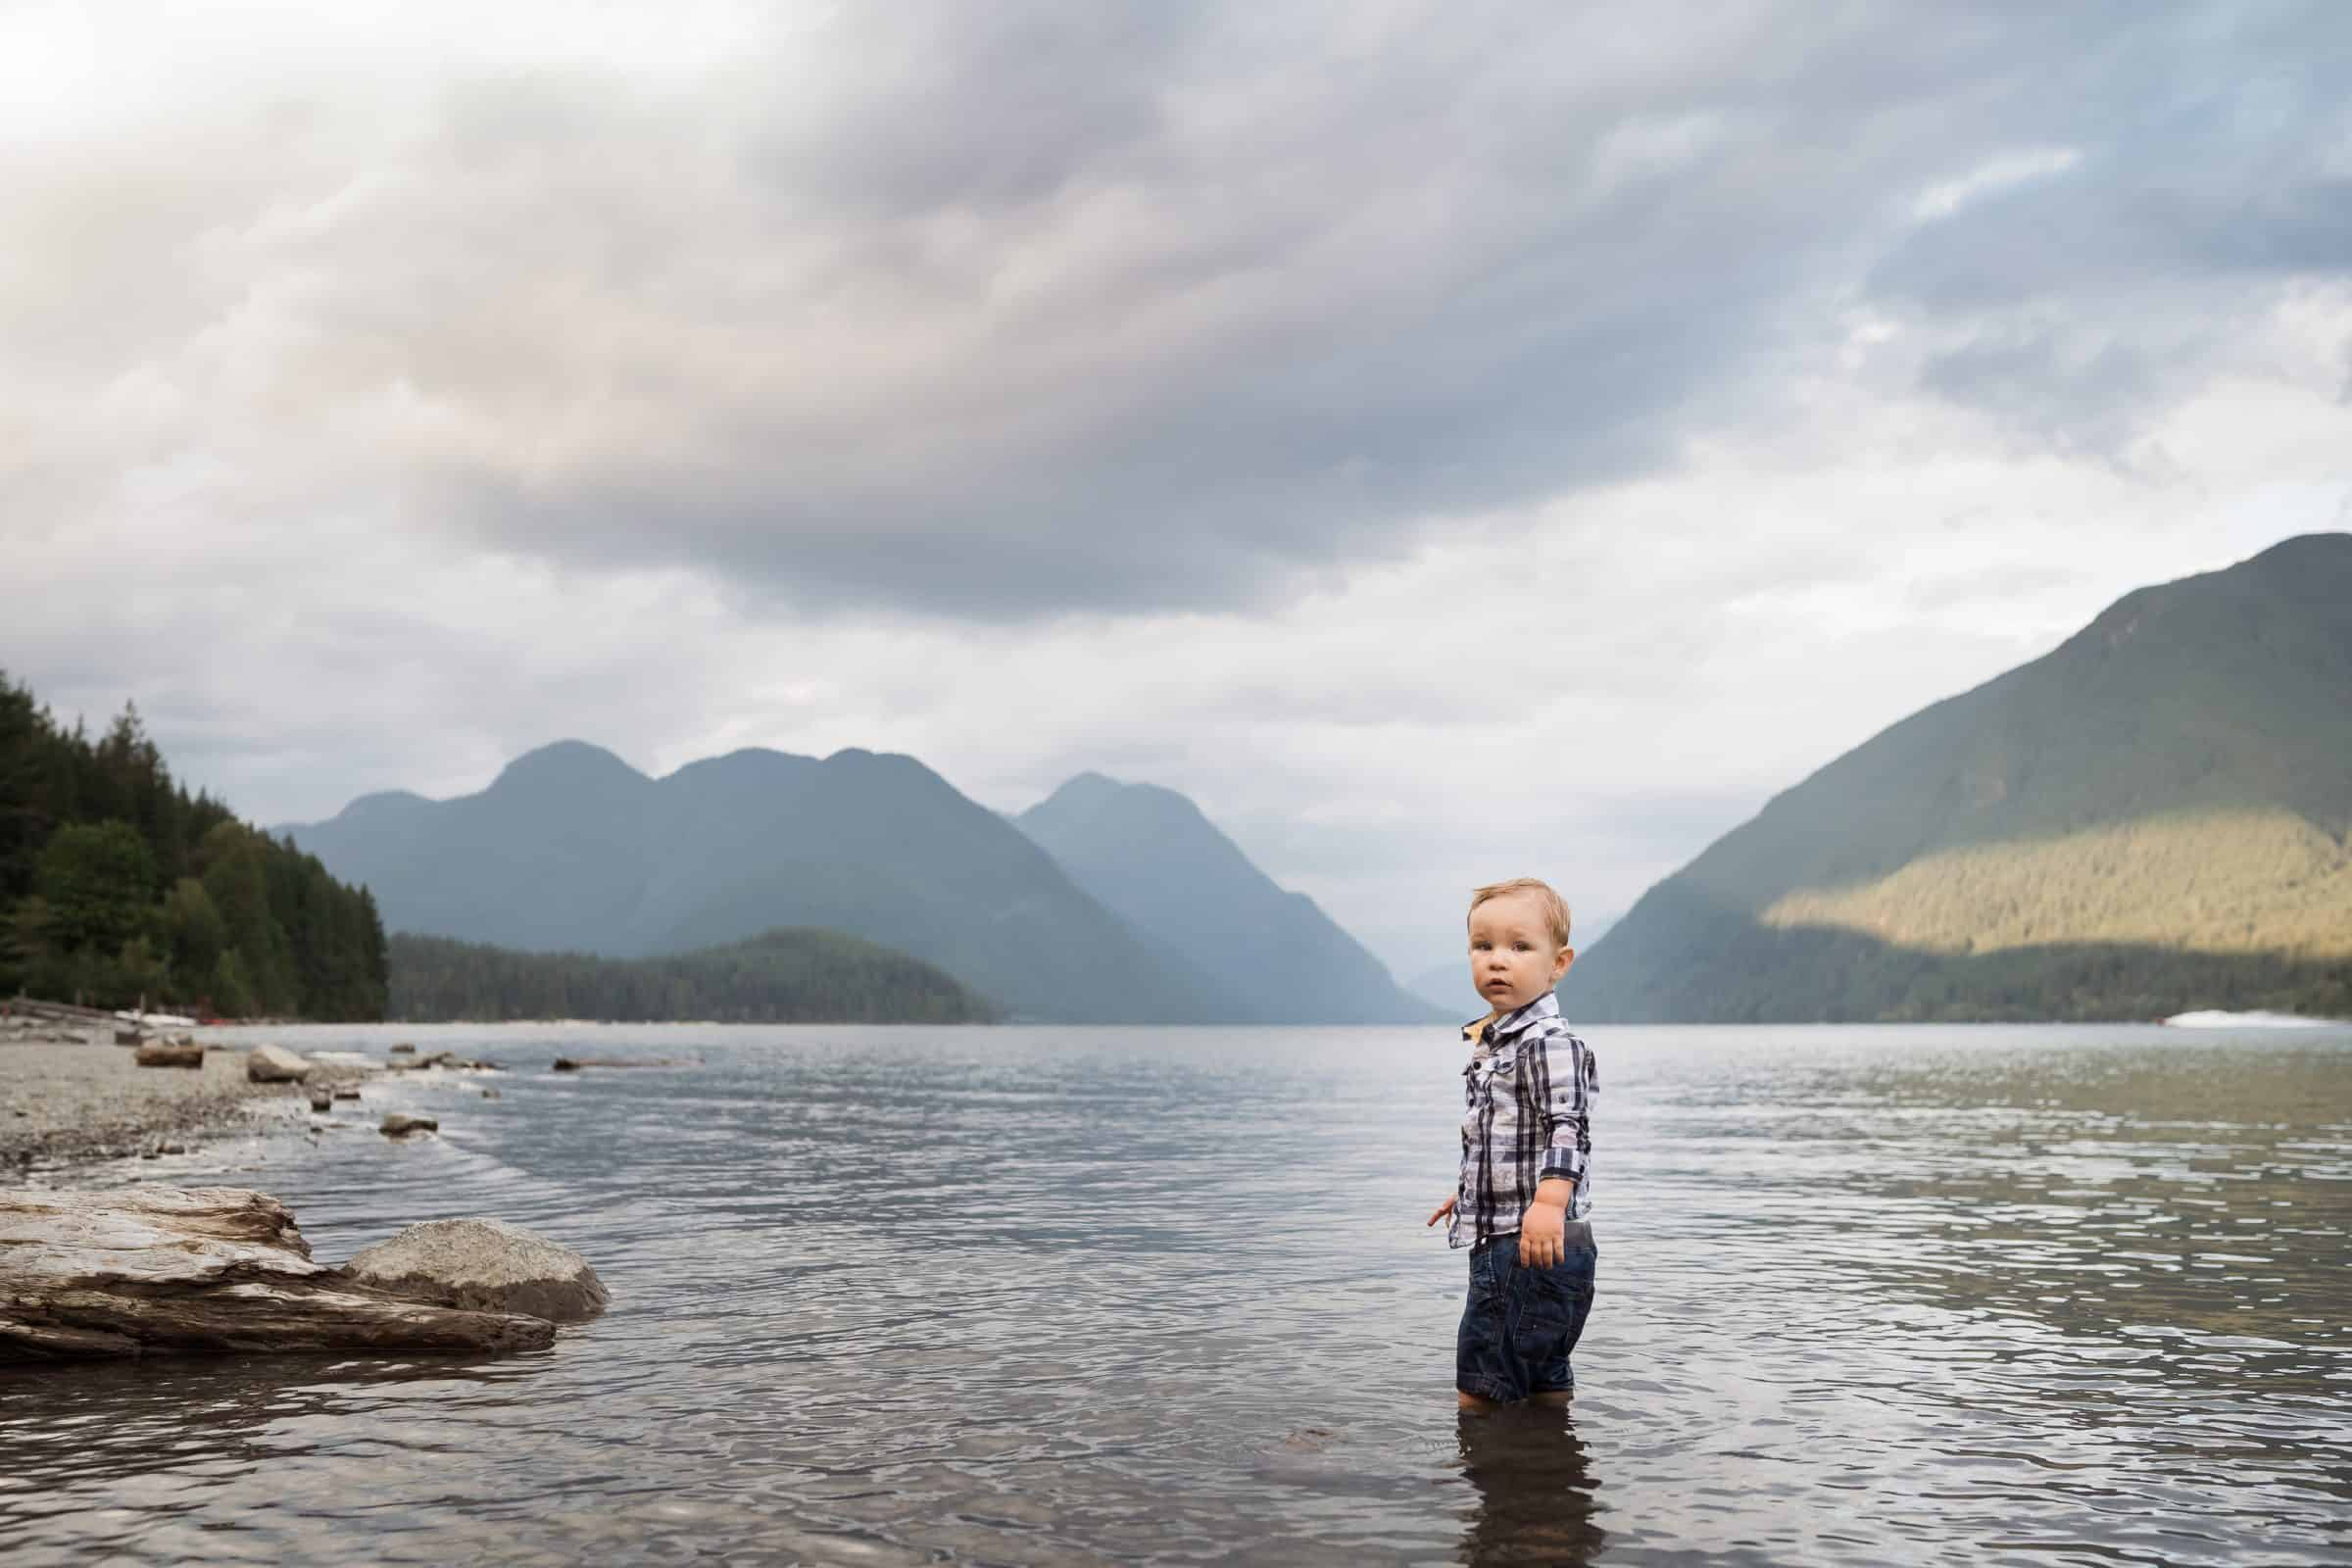 toddler boy standing in lake with mountains behind him looking at camera